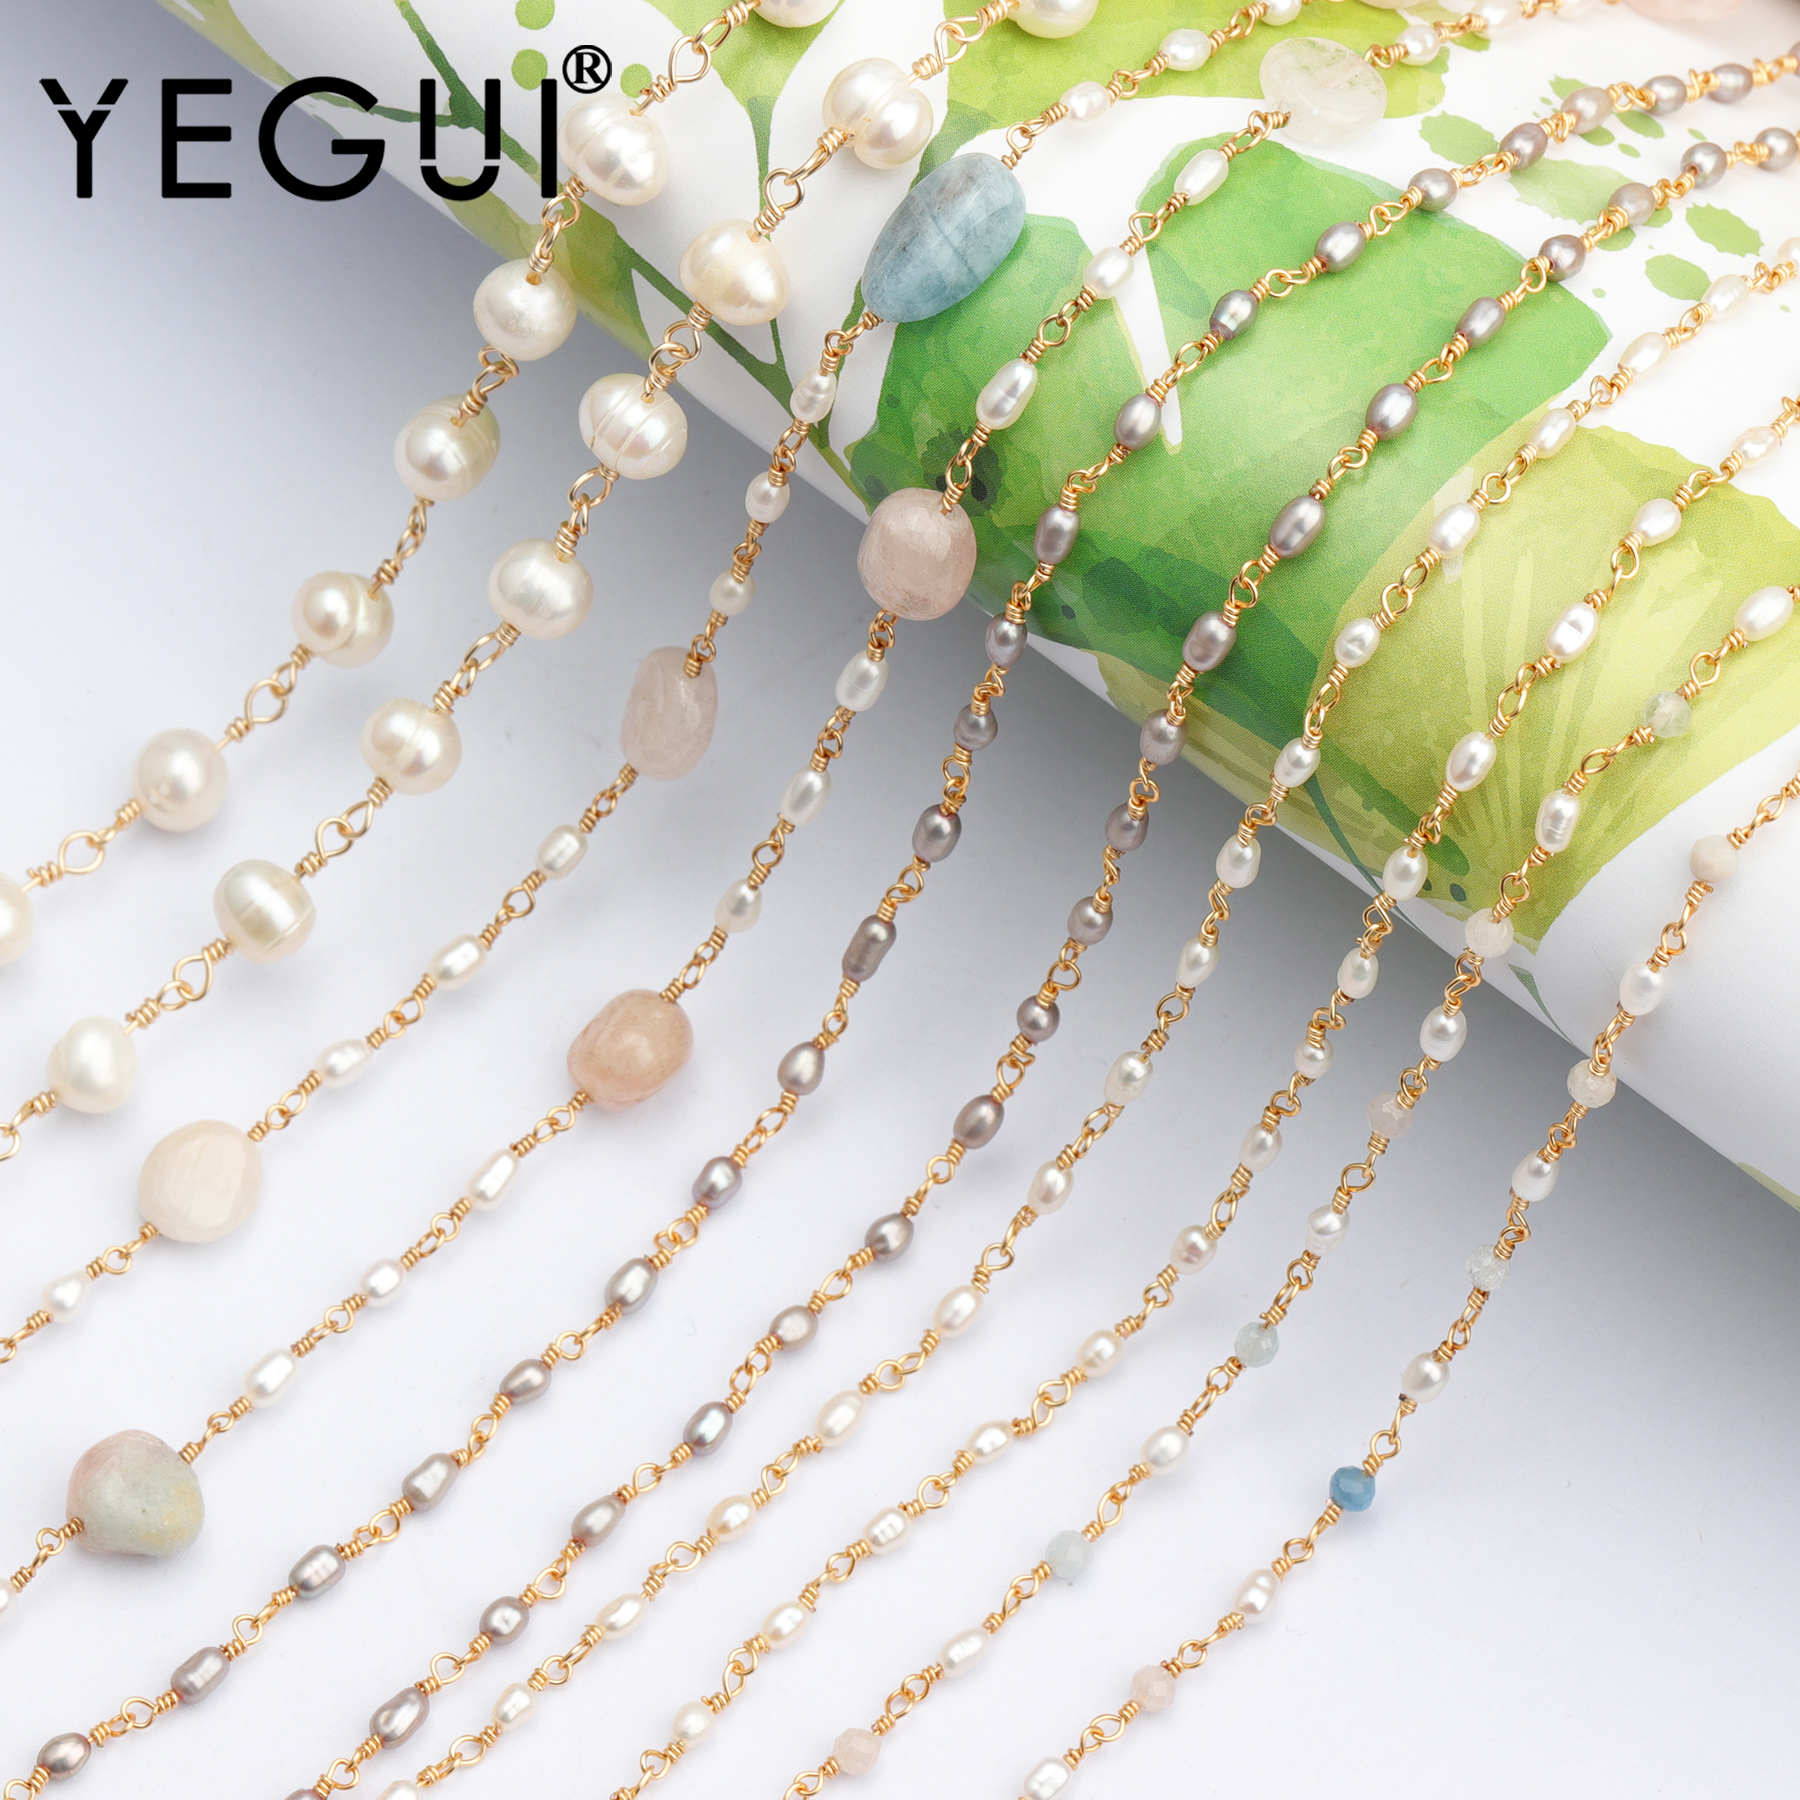 YEGUI C71,jewelry Accessories,diy Chain,18k Gold Plated,natural Stone Pearl,beads,diy Chain Necklace,jewelry Making,1m/lot